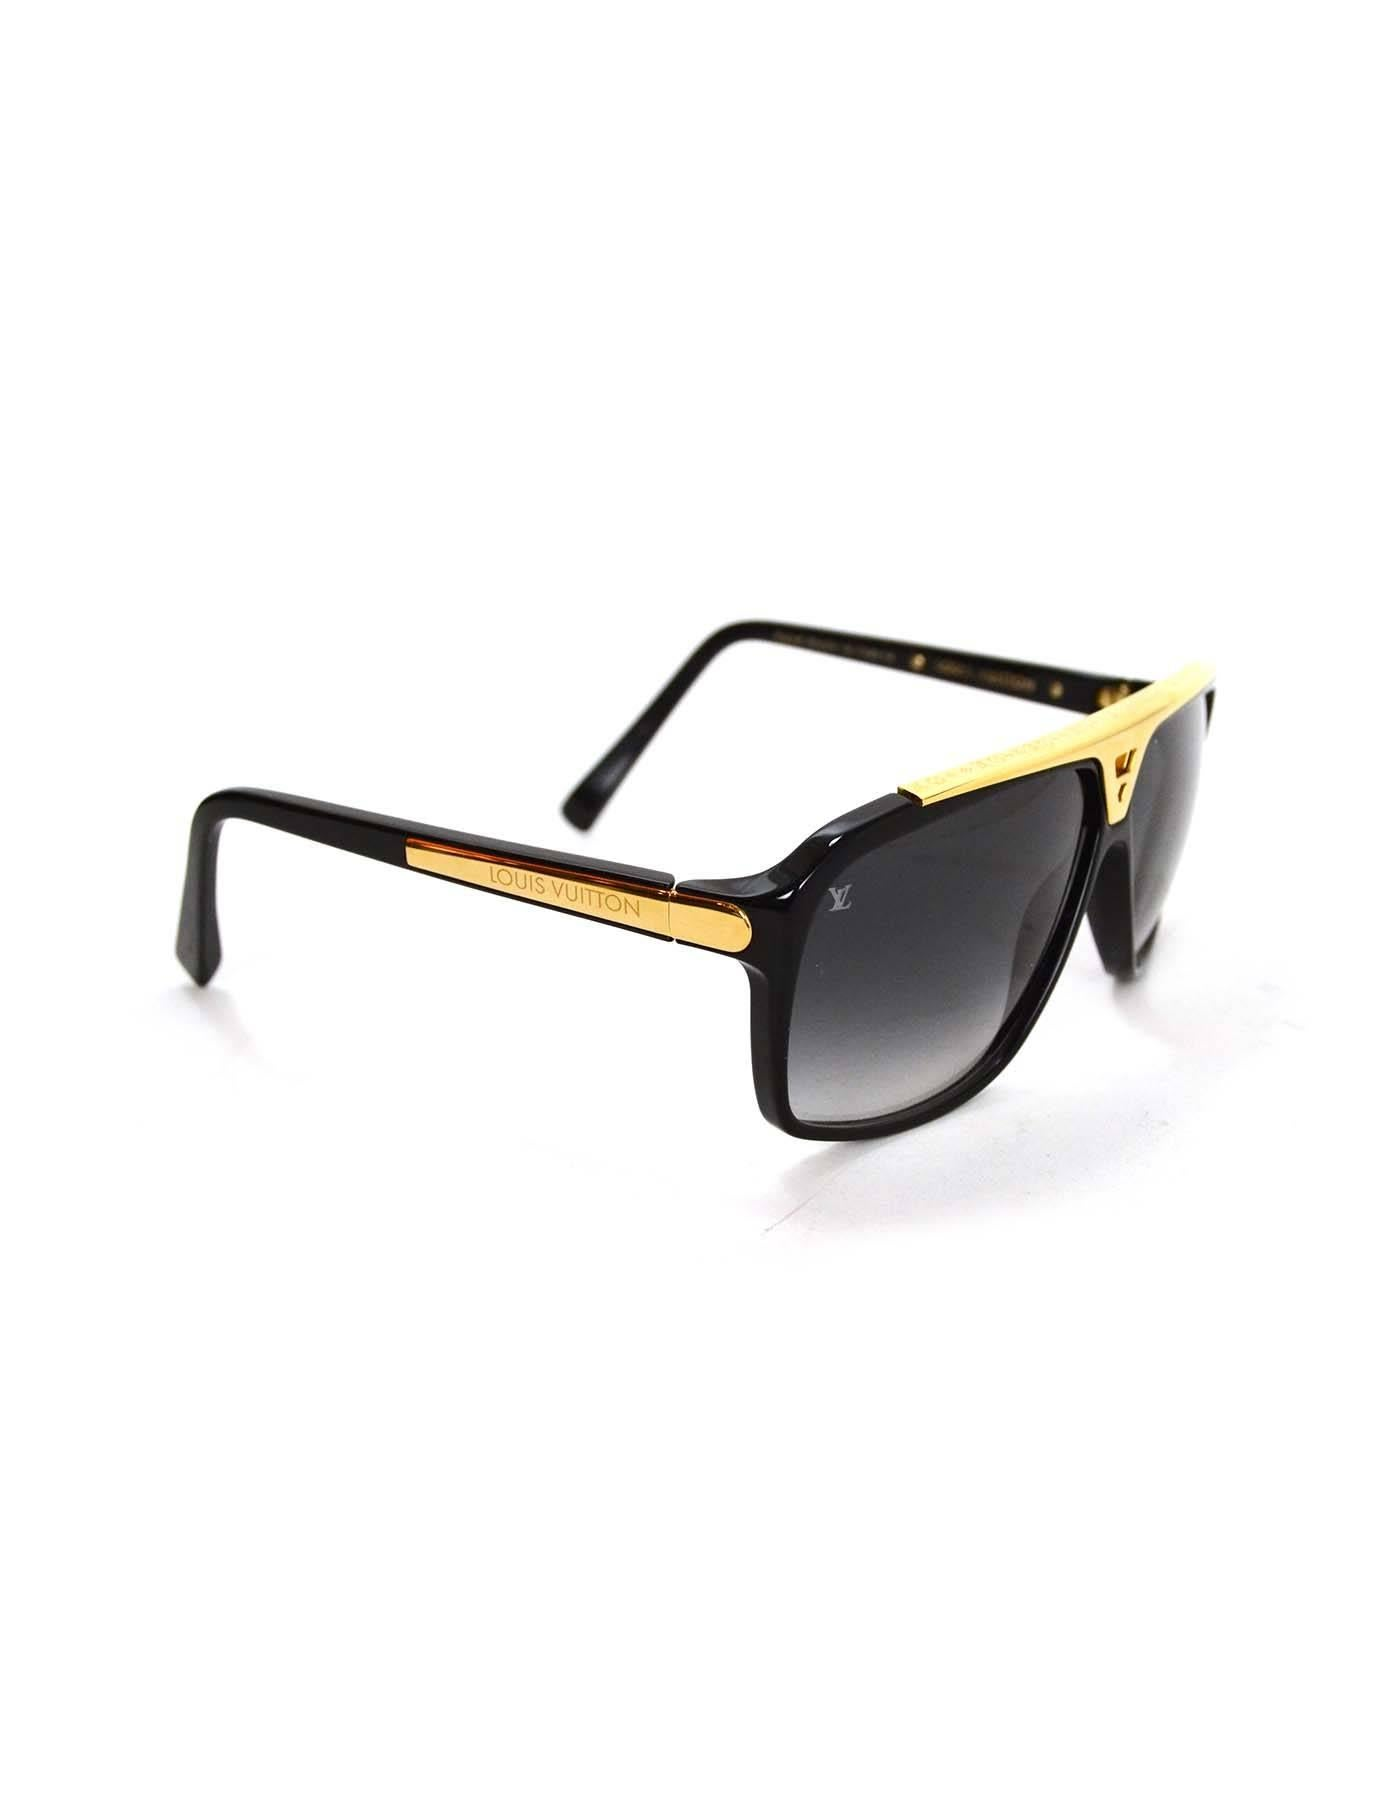 f5696d37002 Louis Vuitton Black and Gold-tone Evidence Sunglasses Rt  760 at 1stdibs